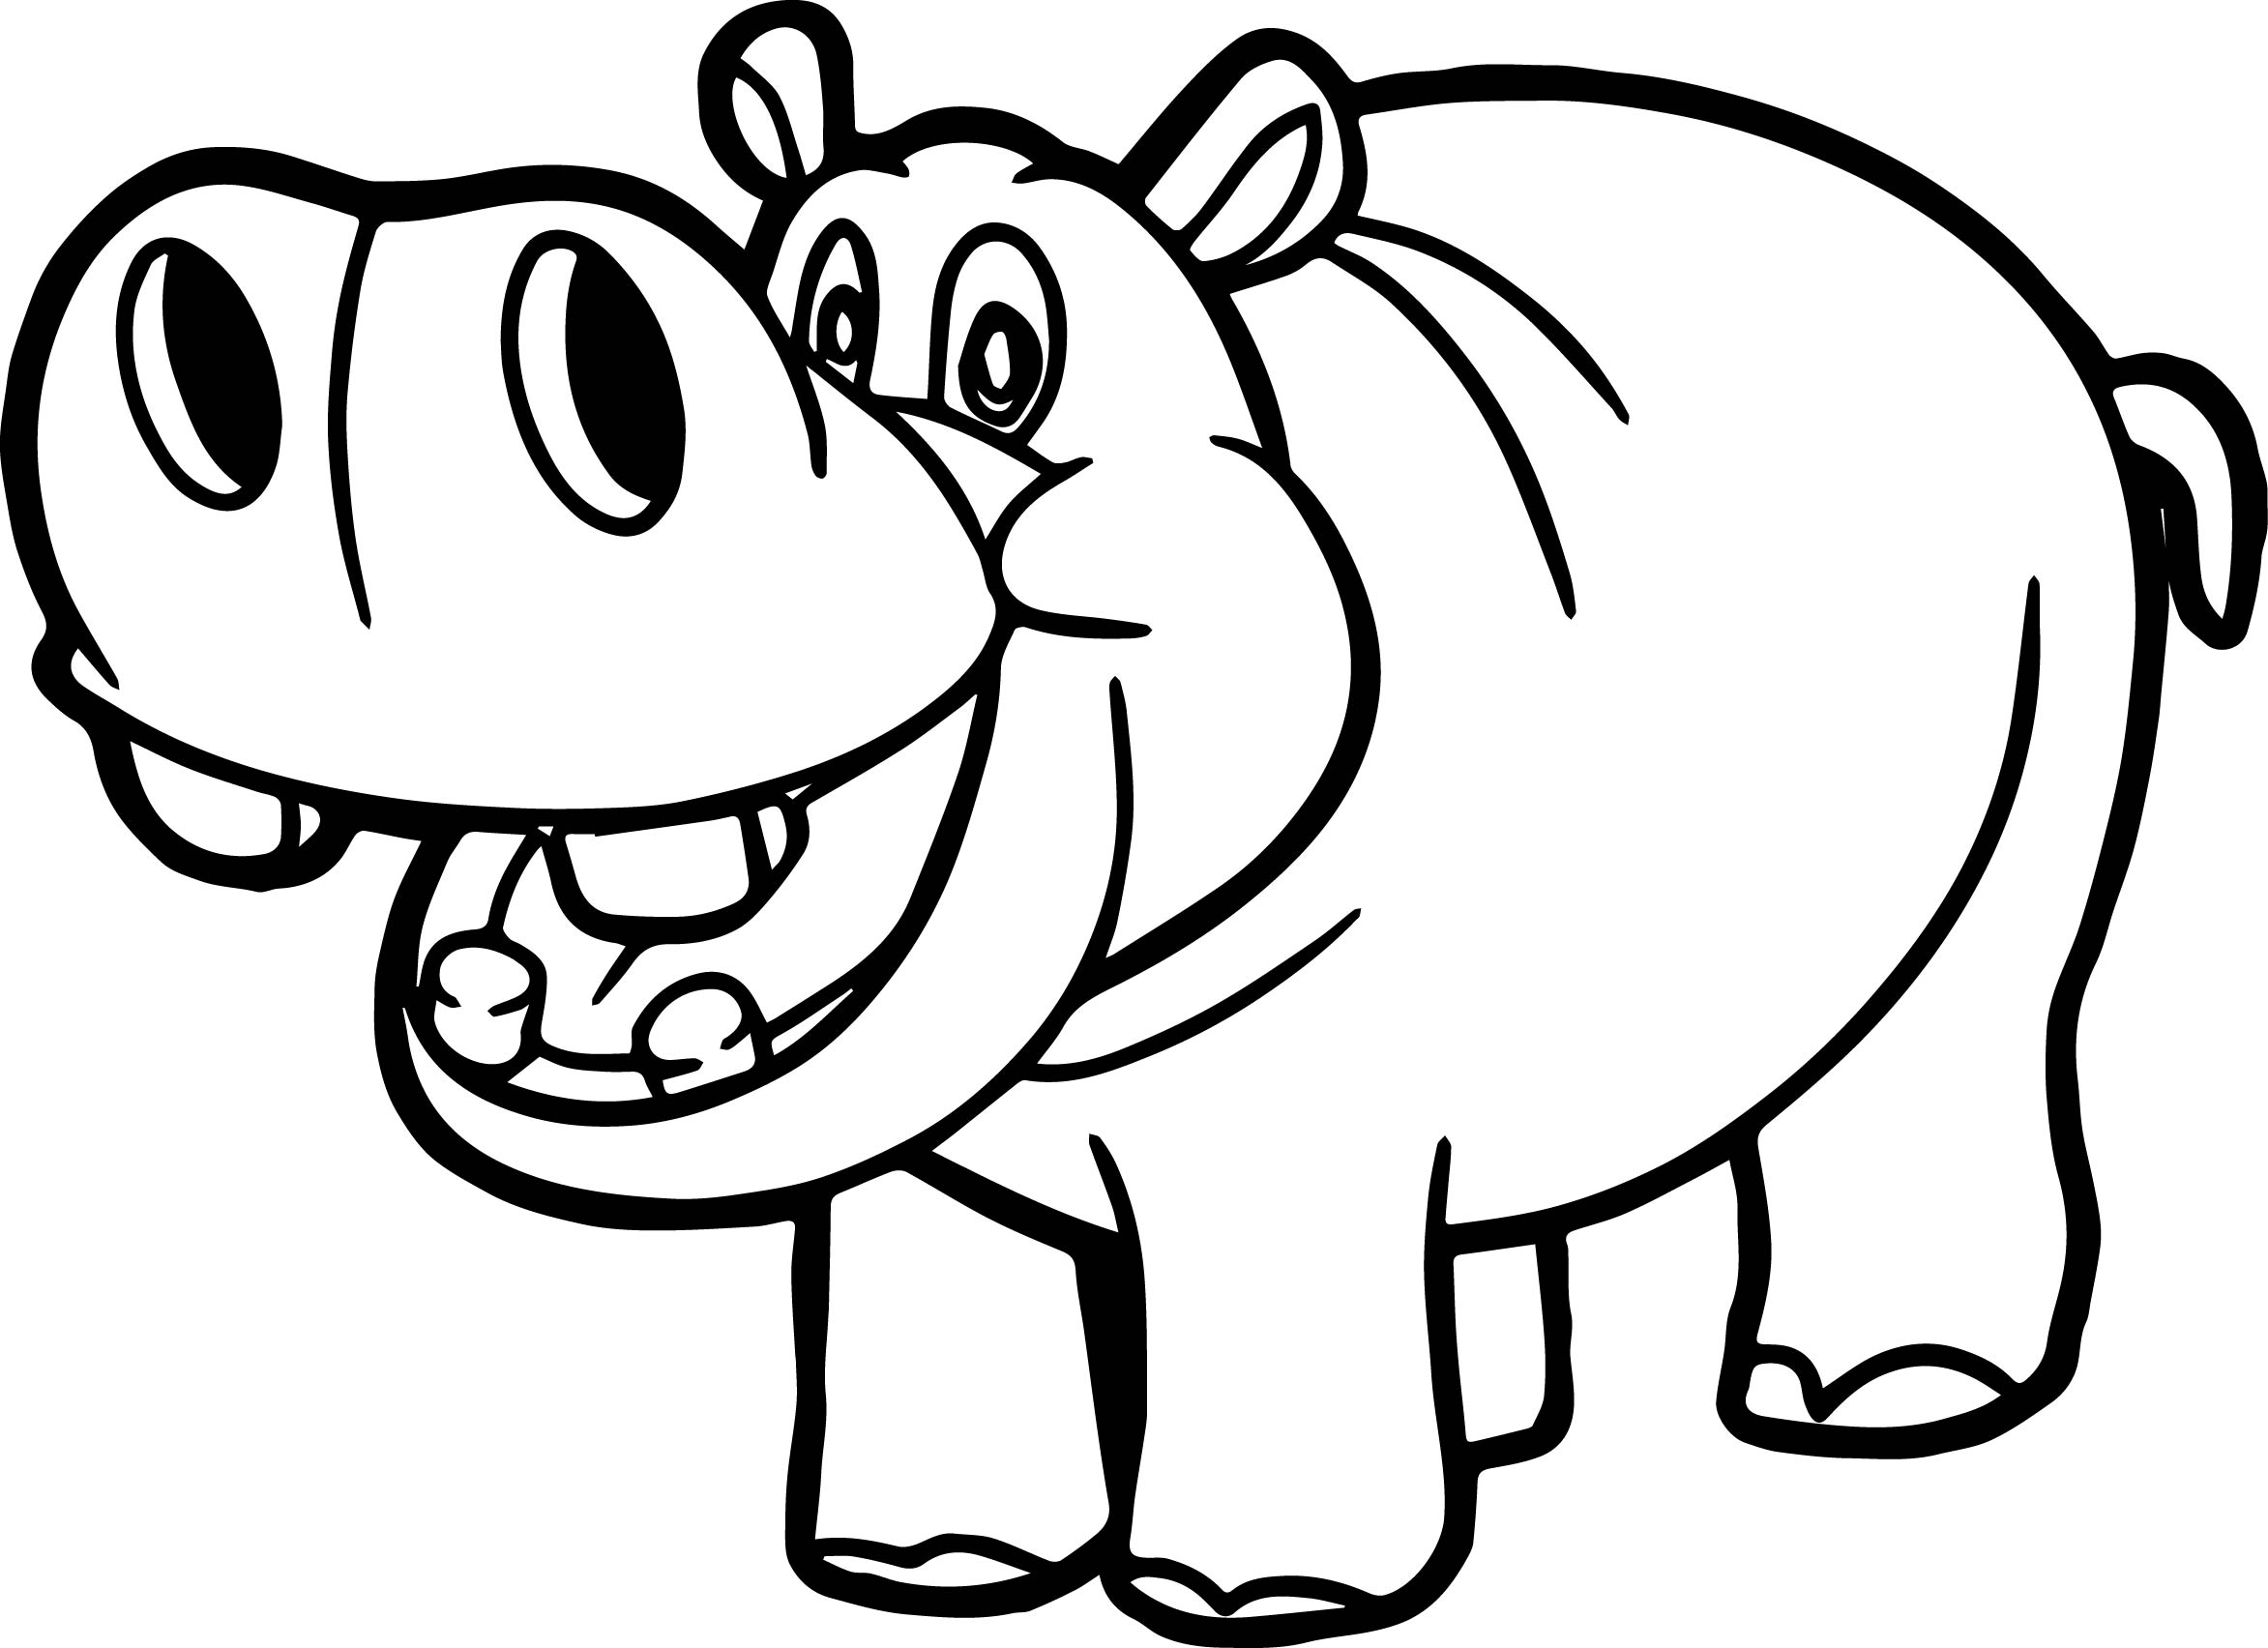 hippo coloring page printable hippo coloring pages for kids cool2bkids page coloring hippo